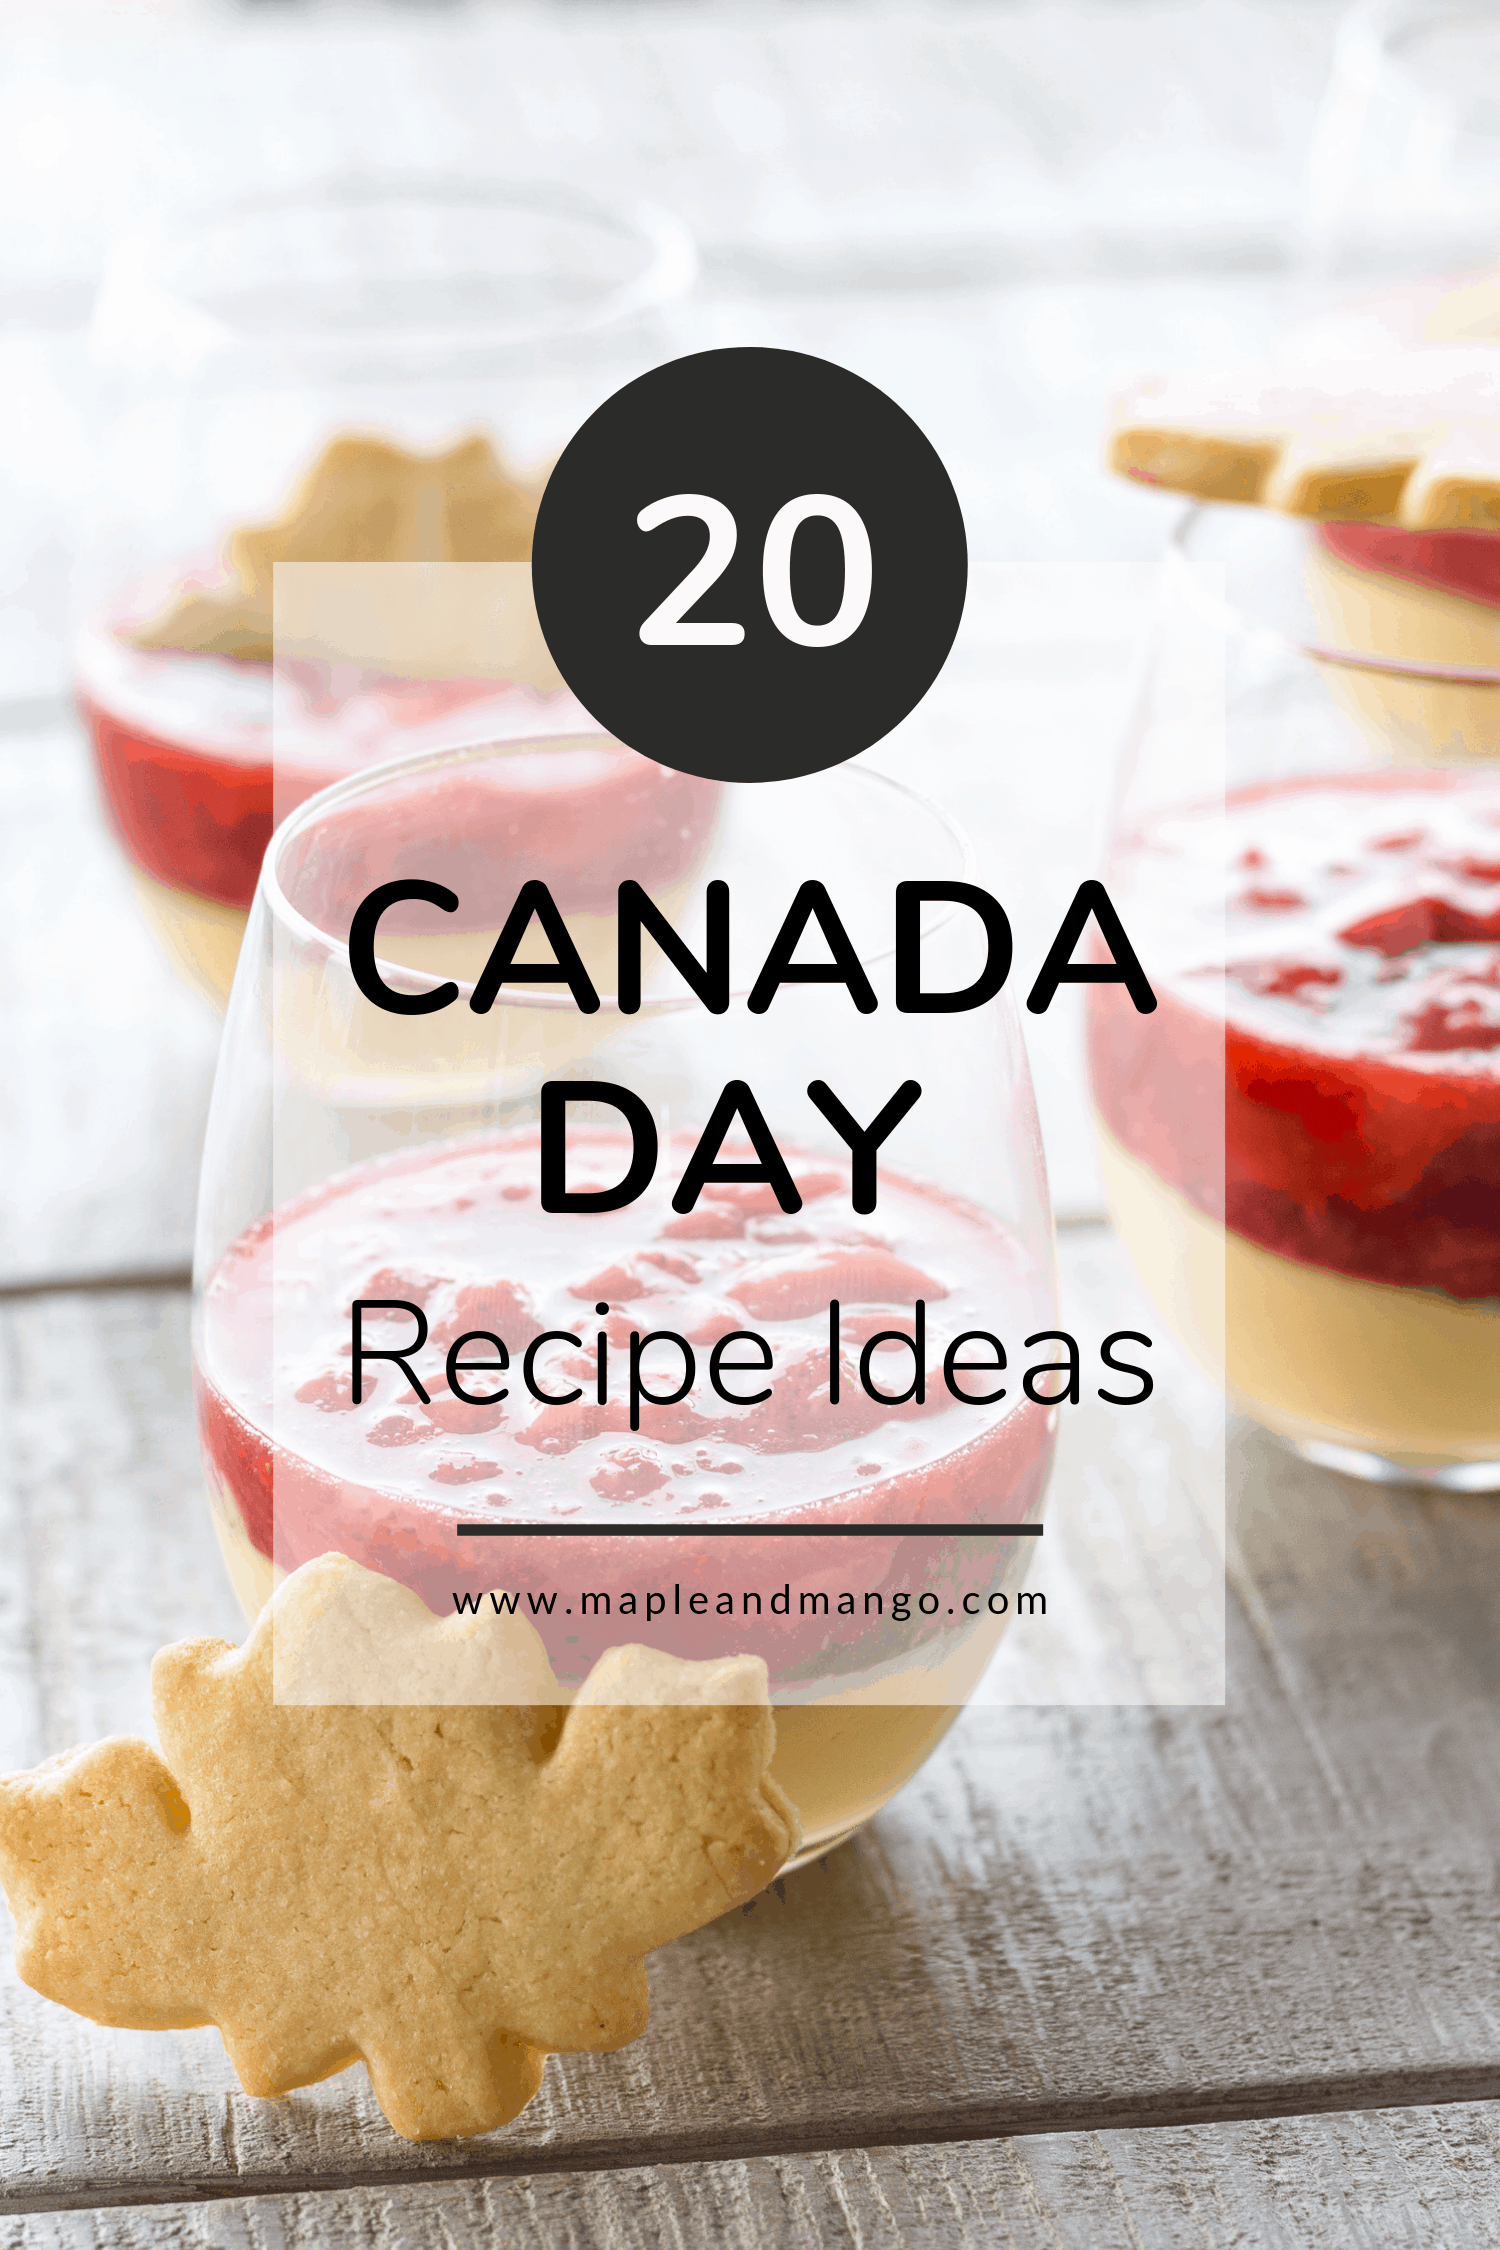 3 glasses of maple custard with strawberry compote with text overlay saying 20 Canada Day Recipe Ideas